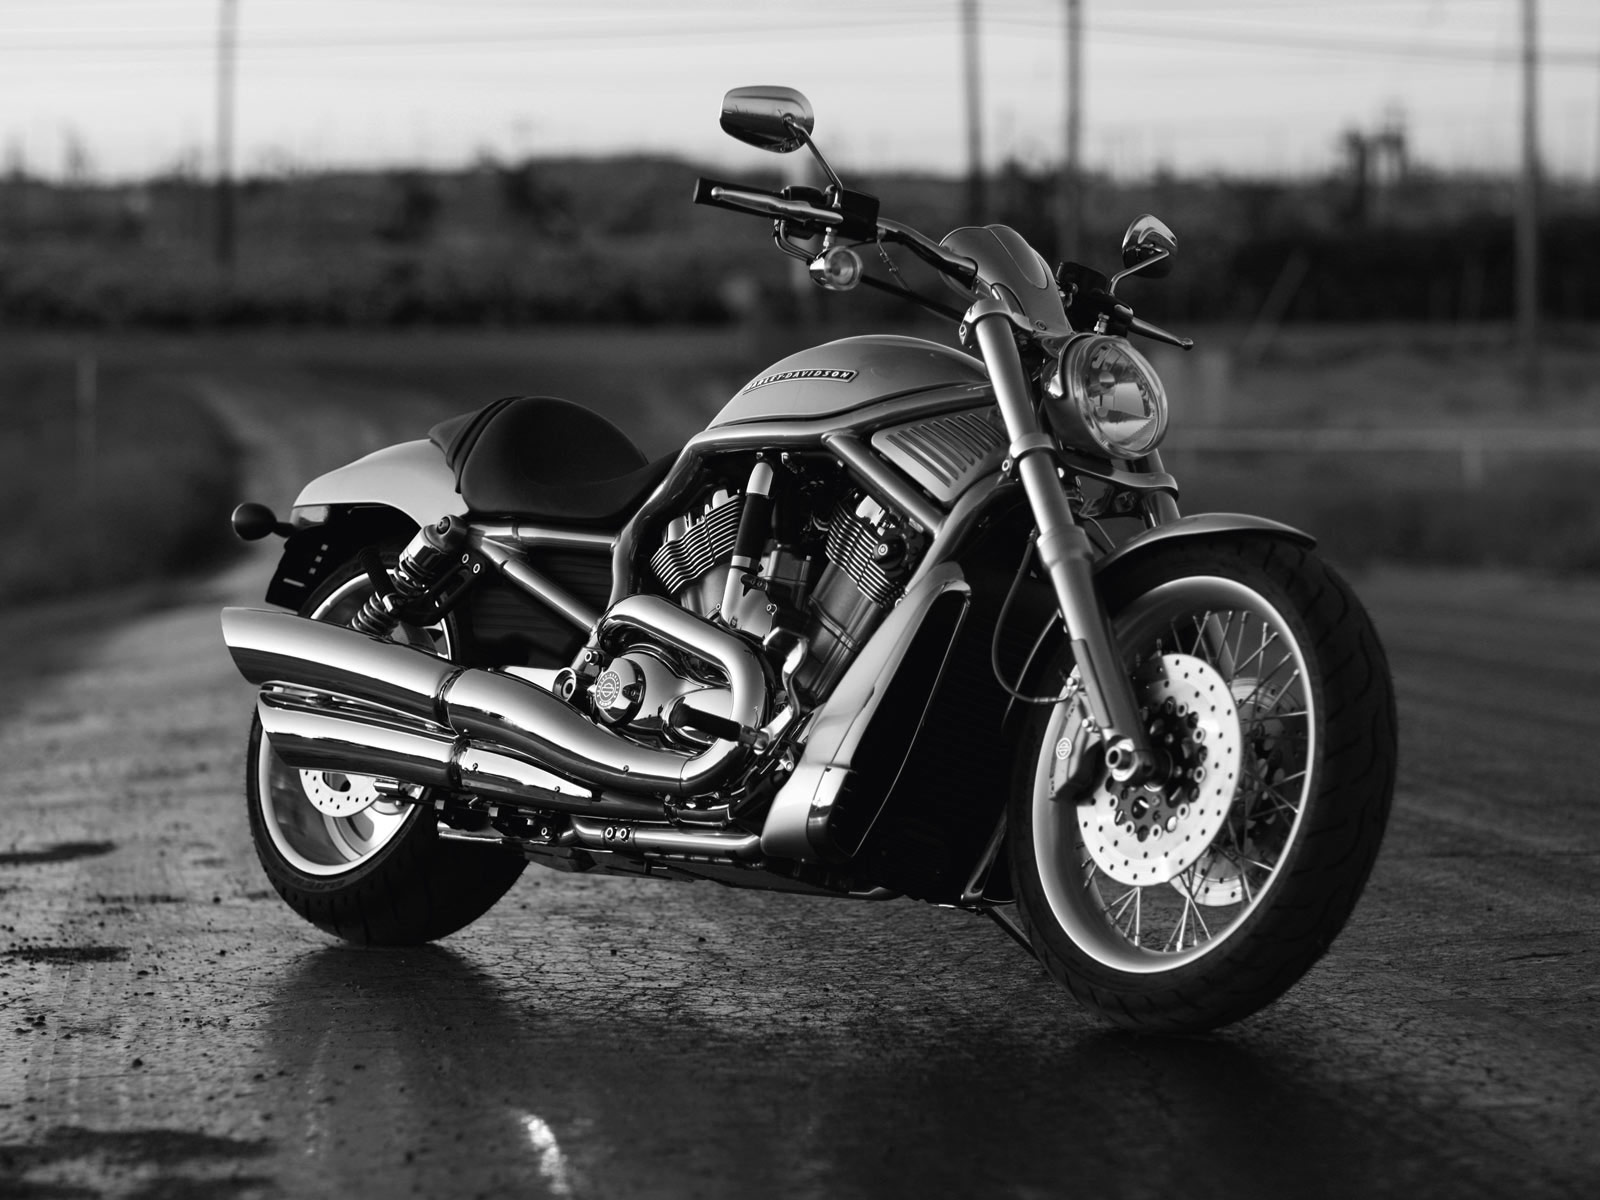 Hd Fiers Bikes Hd Wallpapers: 2010 Harley-Davidson VRSCAW V-Rod Pictures. Accident